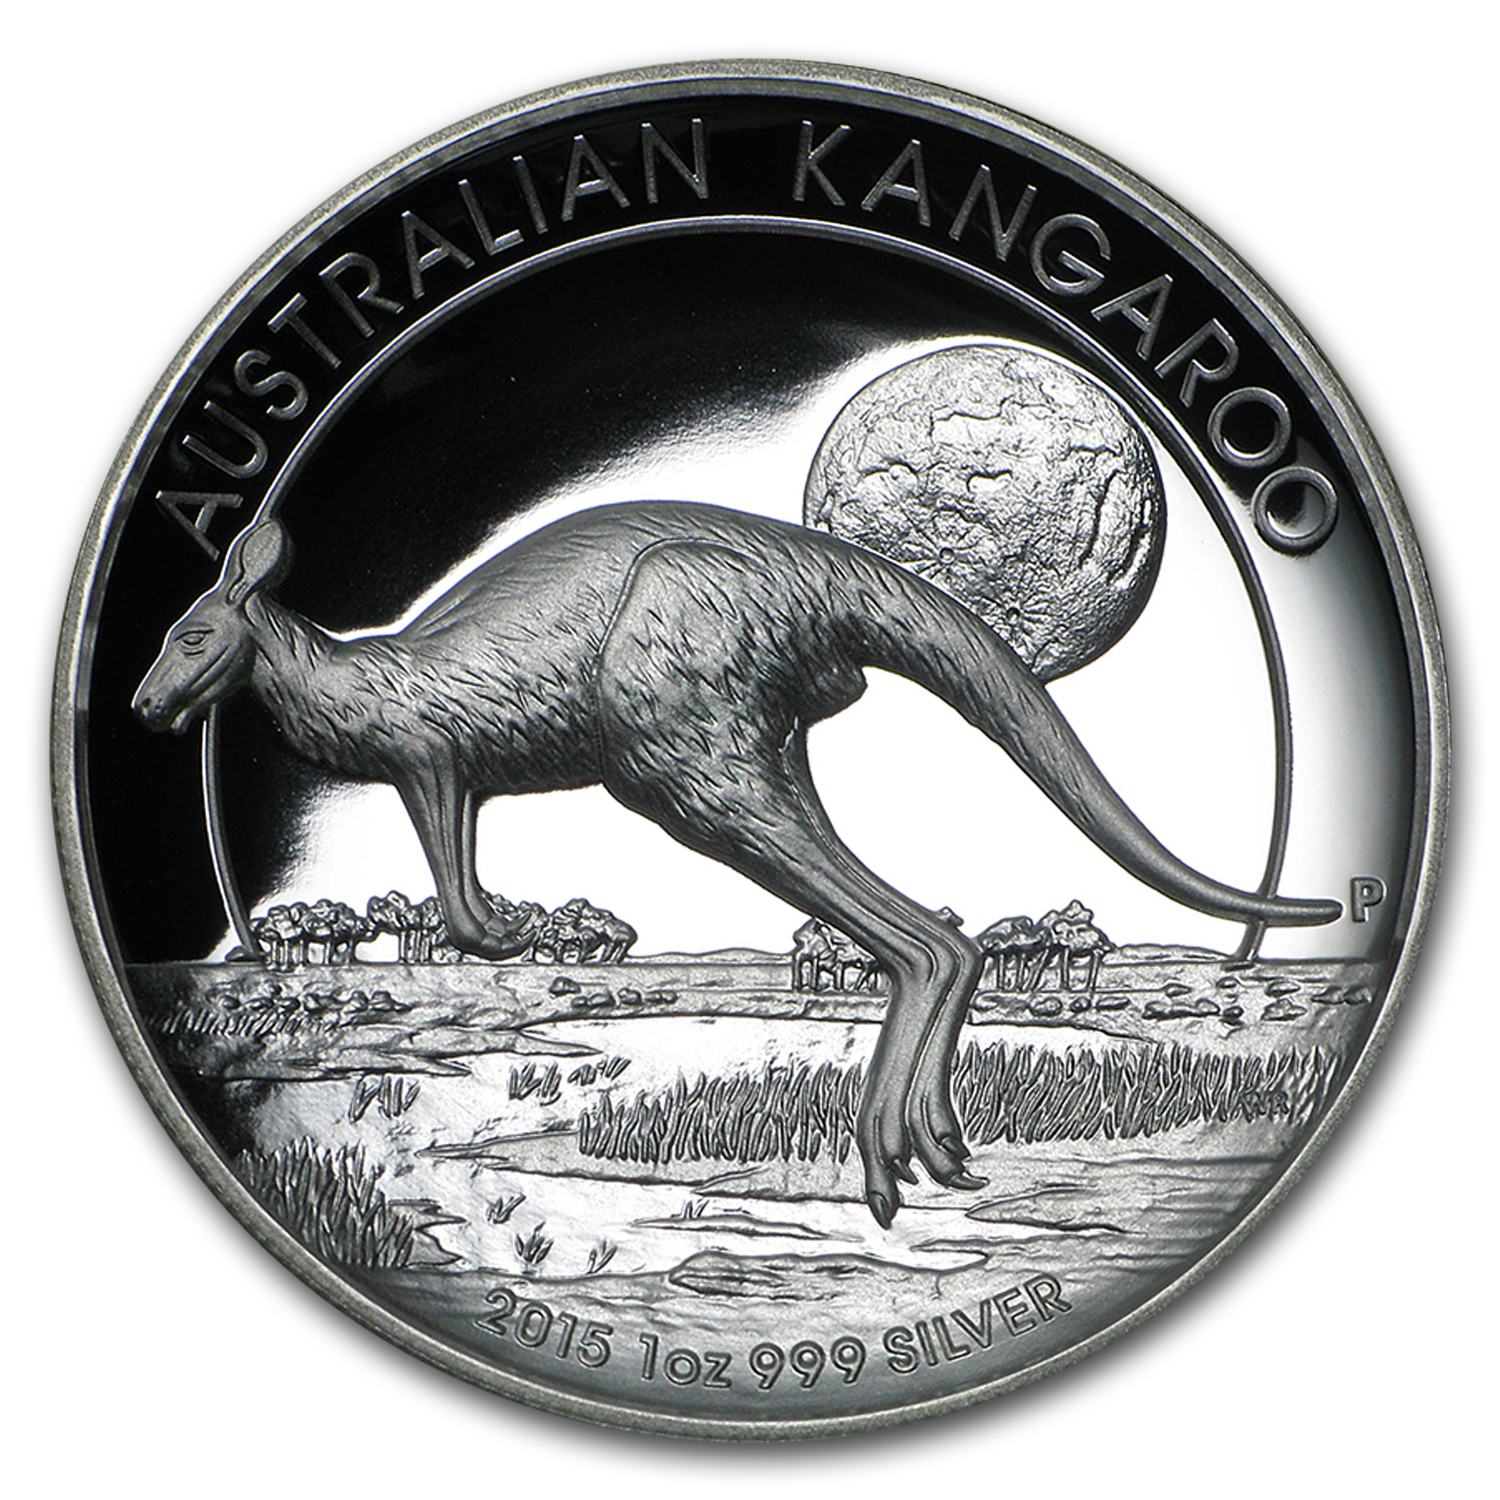 2015 Australia 1 oz Silver Kangaroo Proof (High Relief)